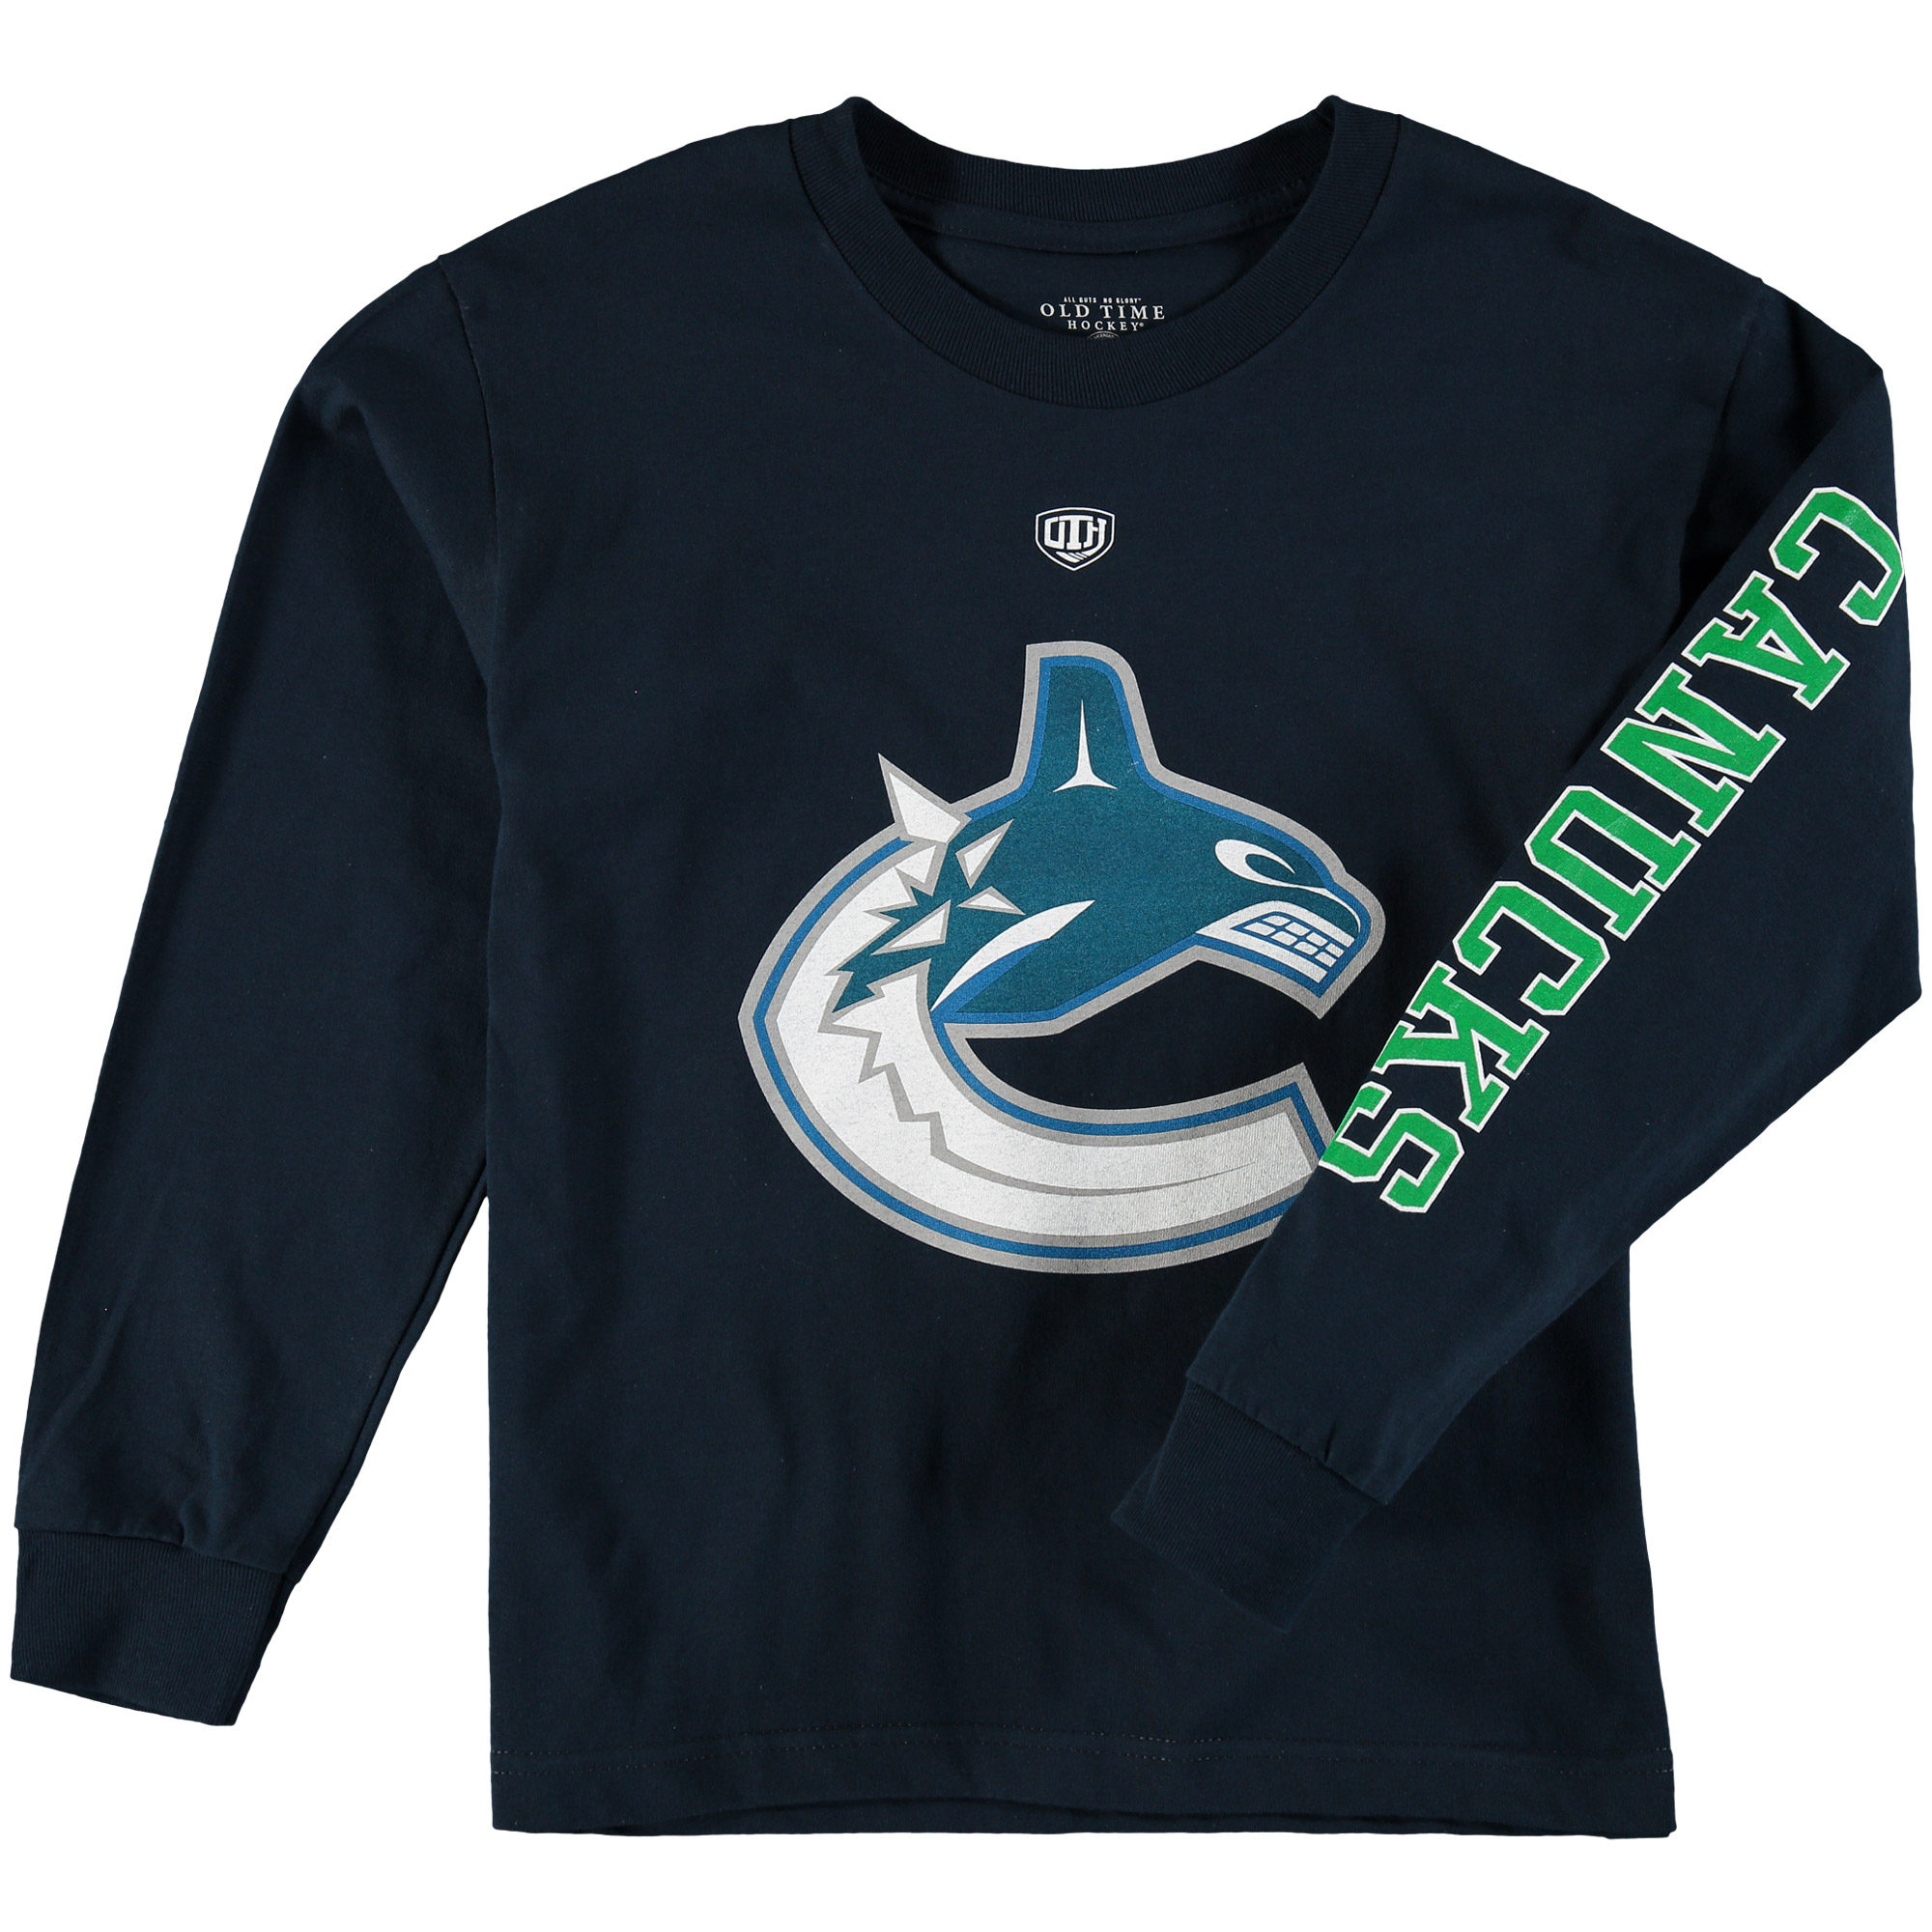 Vancouver Canucks Old Time Hockey Youth Two Hit Long Sleeve T-Shirt Blue by Old Time Hockey